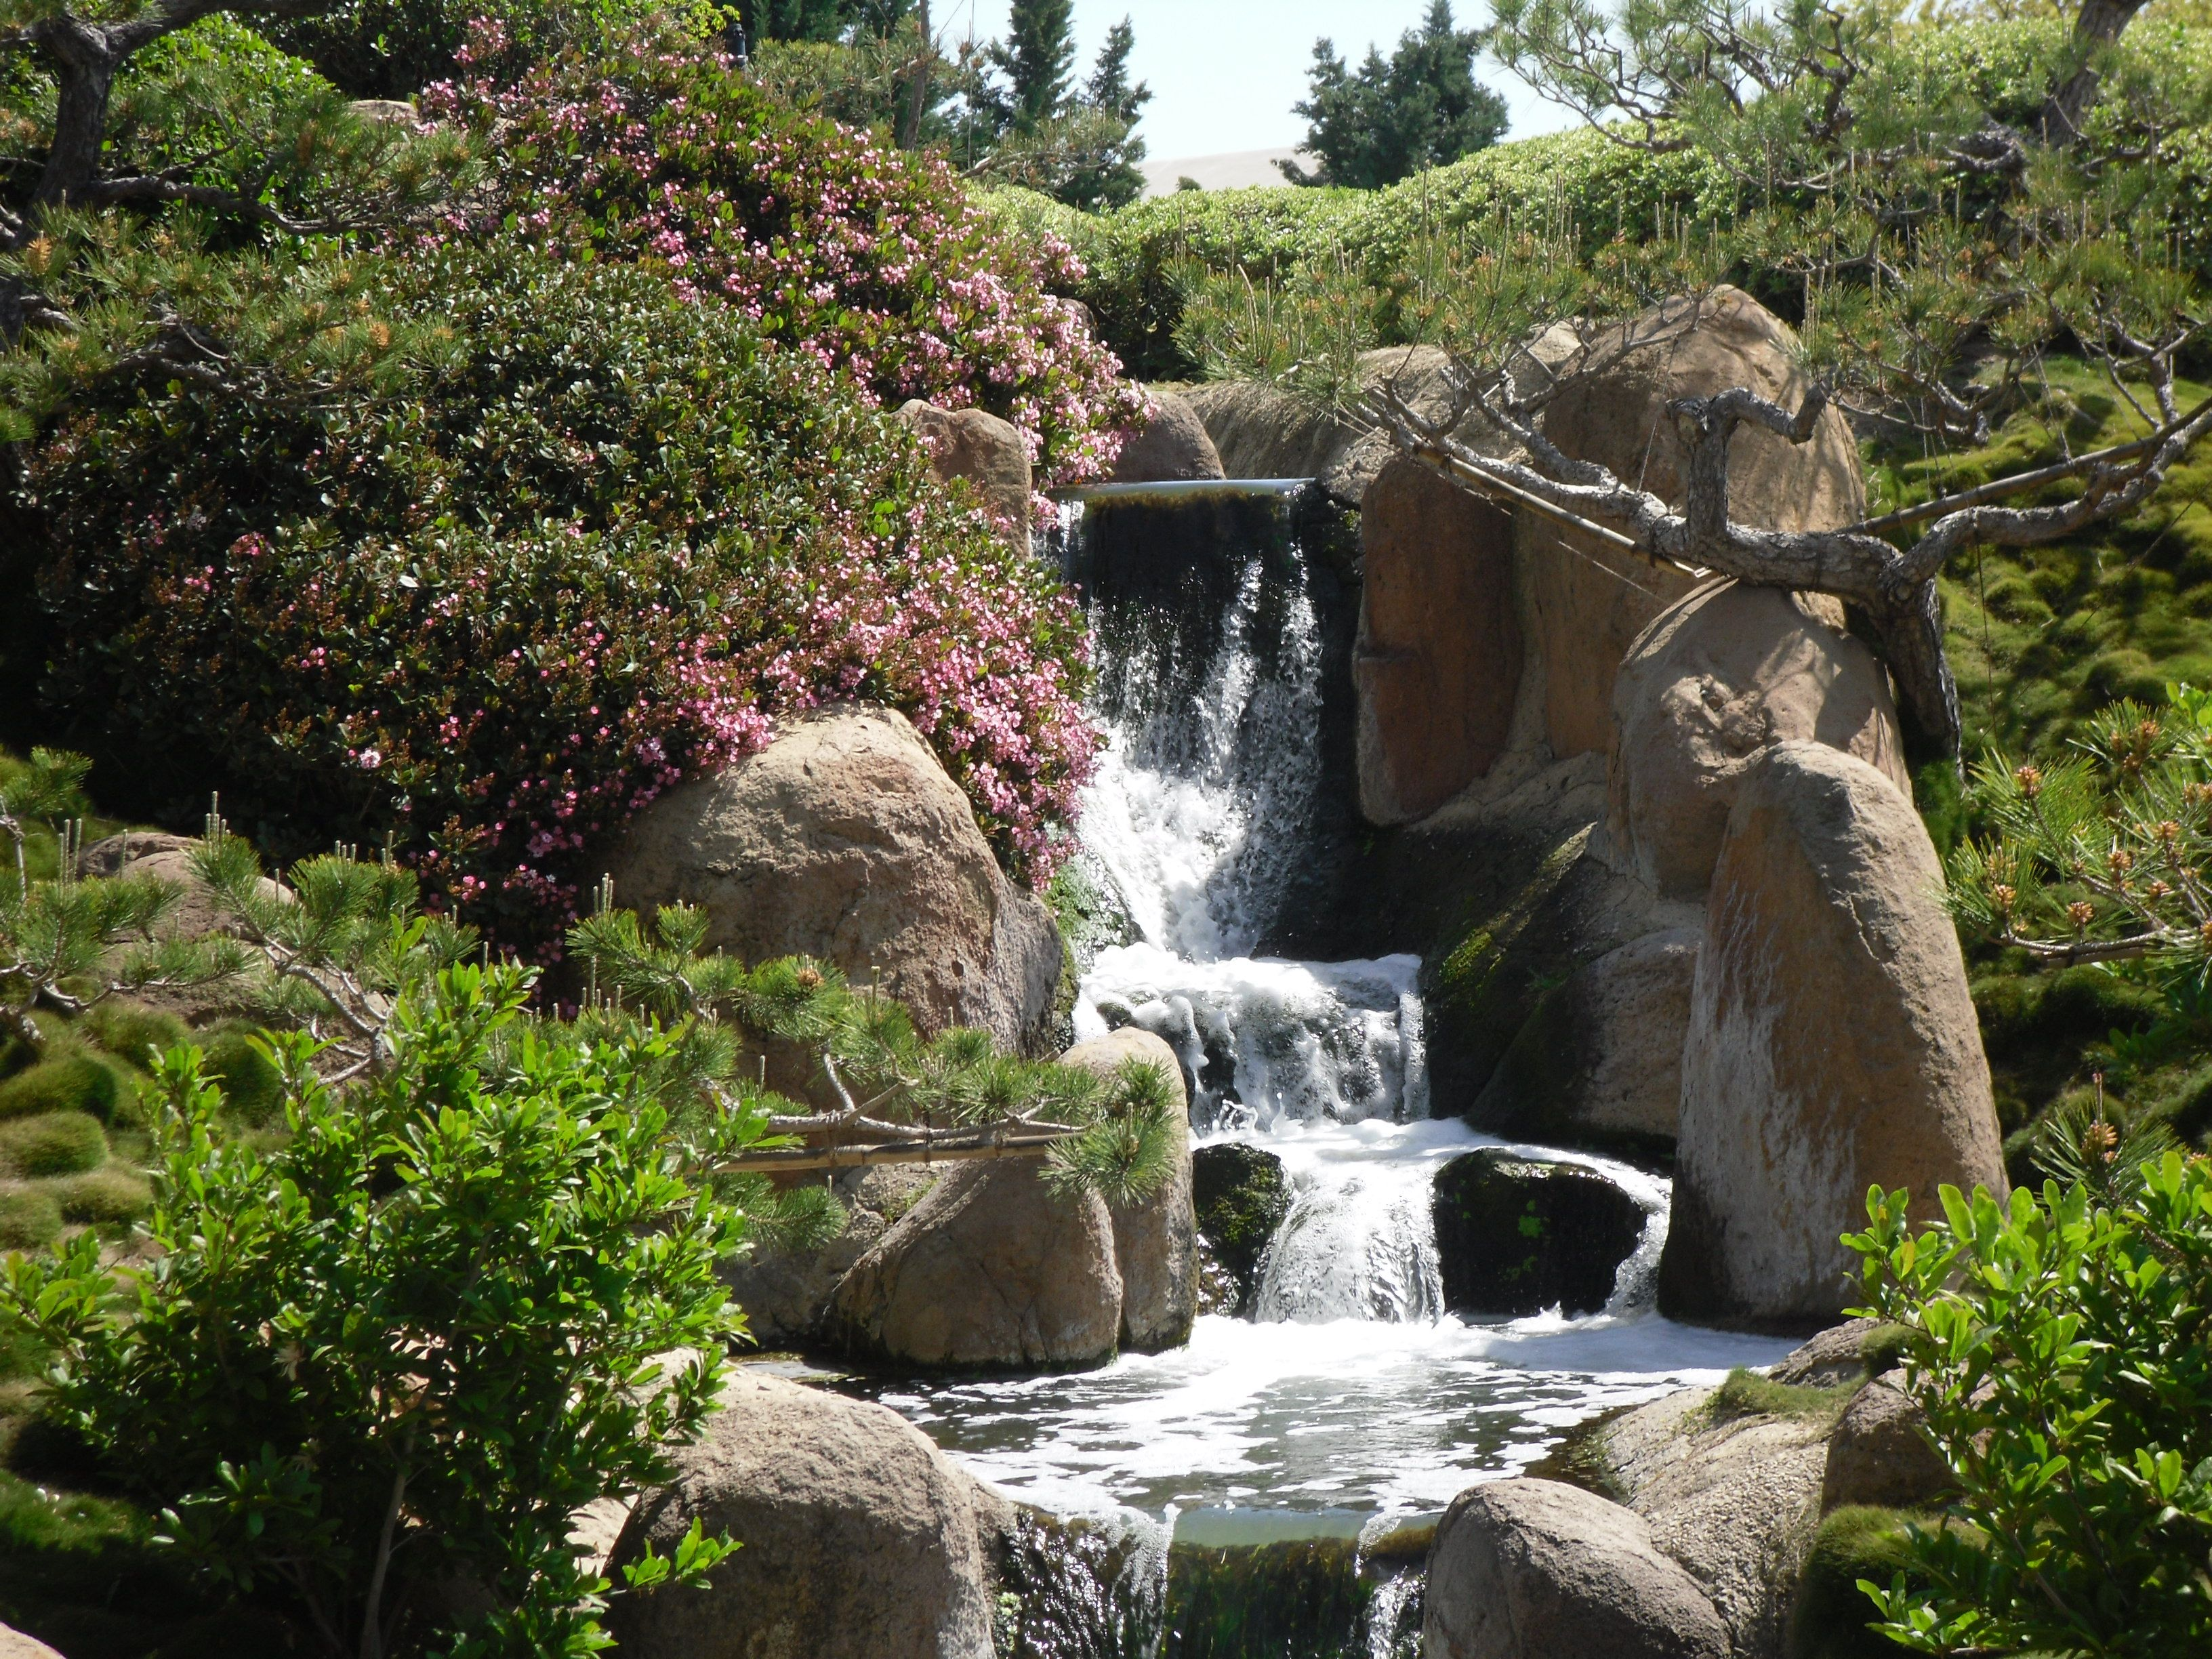 The garden is a relaxing and peaceful place to visit, you should give it a  try if you can. Waterfall from the Van Nuys Japanese Garden